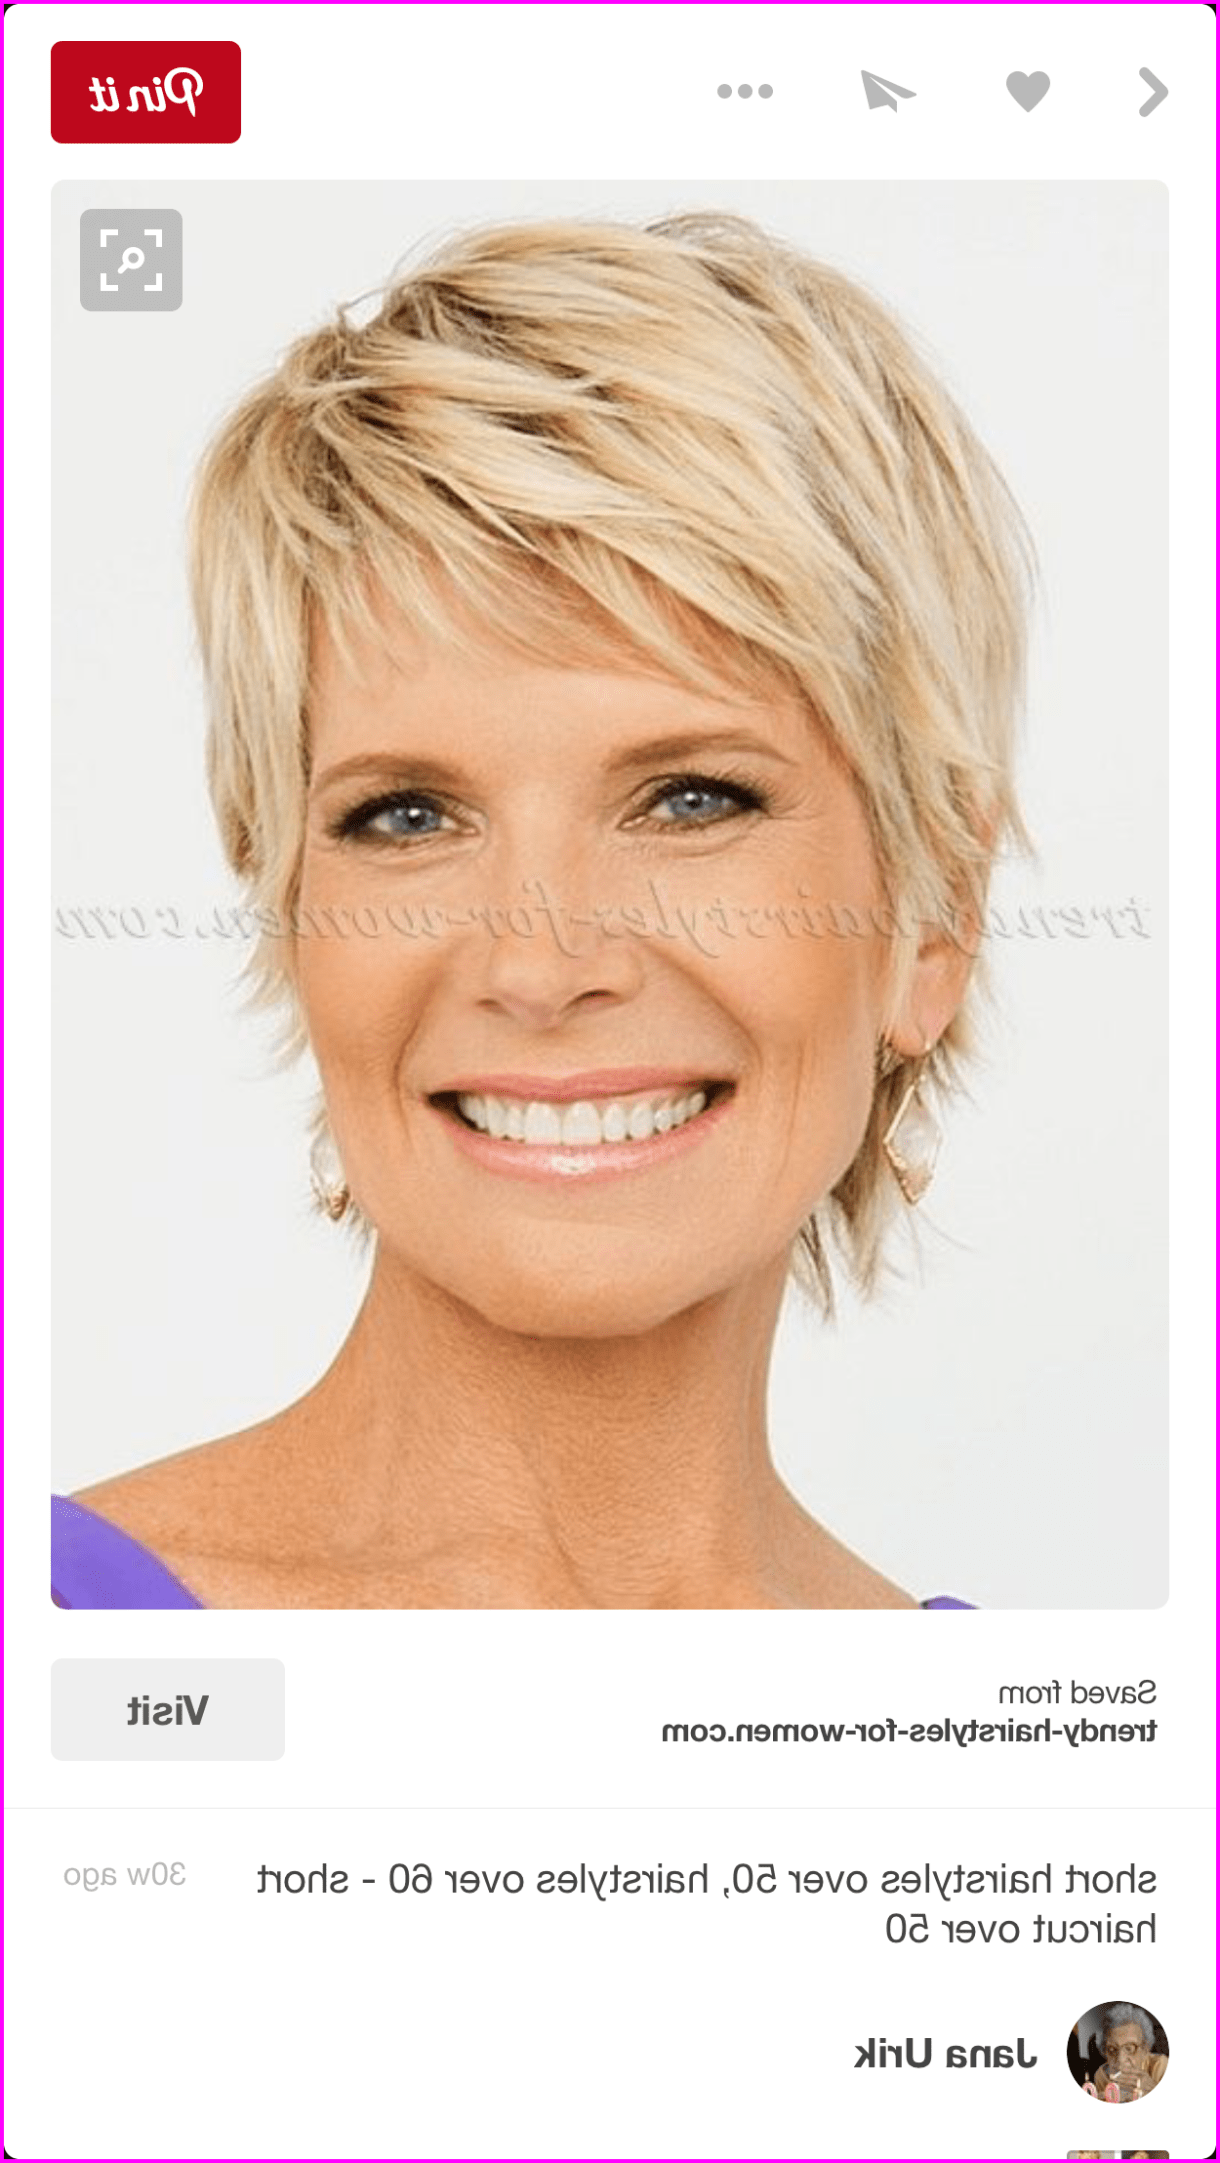 Short Haircuts For Women With Curly Hair Short Layered Hairstyles For Style Stylendesigns Short Curly Hairstyles For Women Short Hair Styles Hair Styles